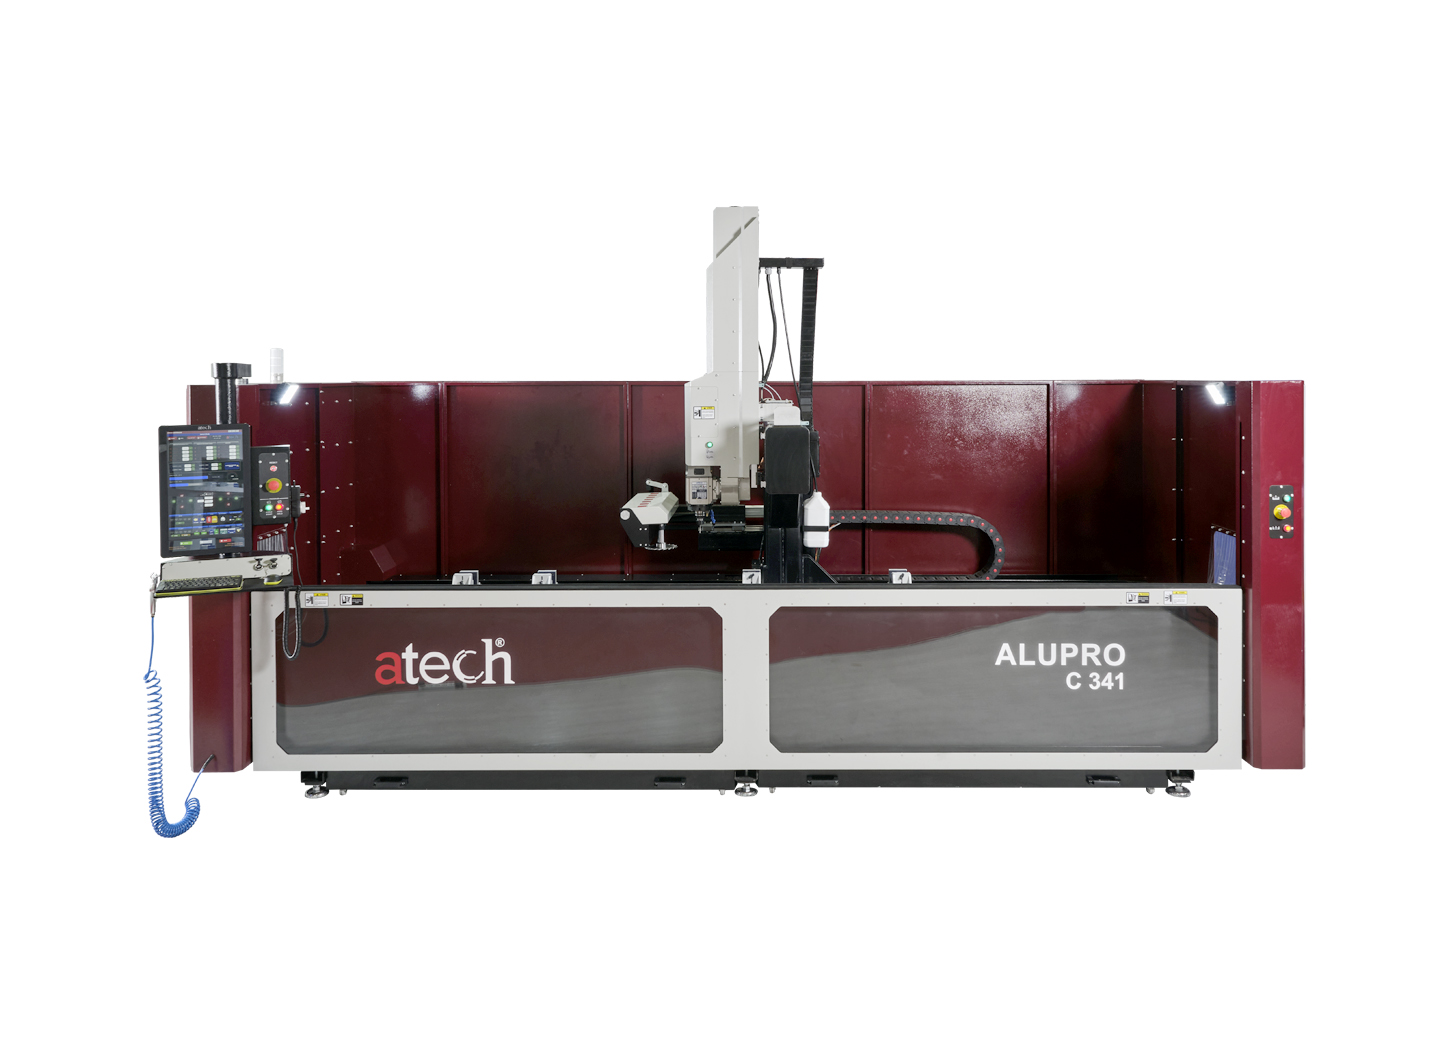 ALUPRO C341 4 AXES CNC Controlled Panel Aluminum Profile Working Mahinery (3)